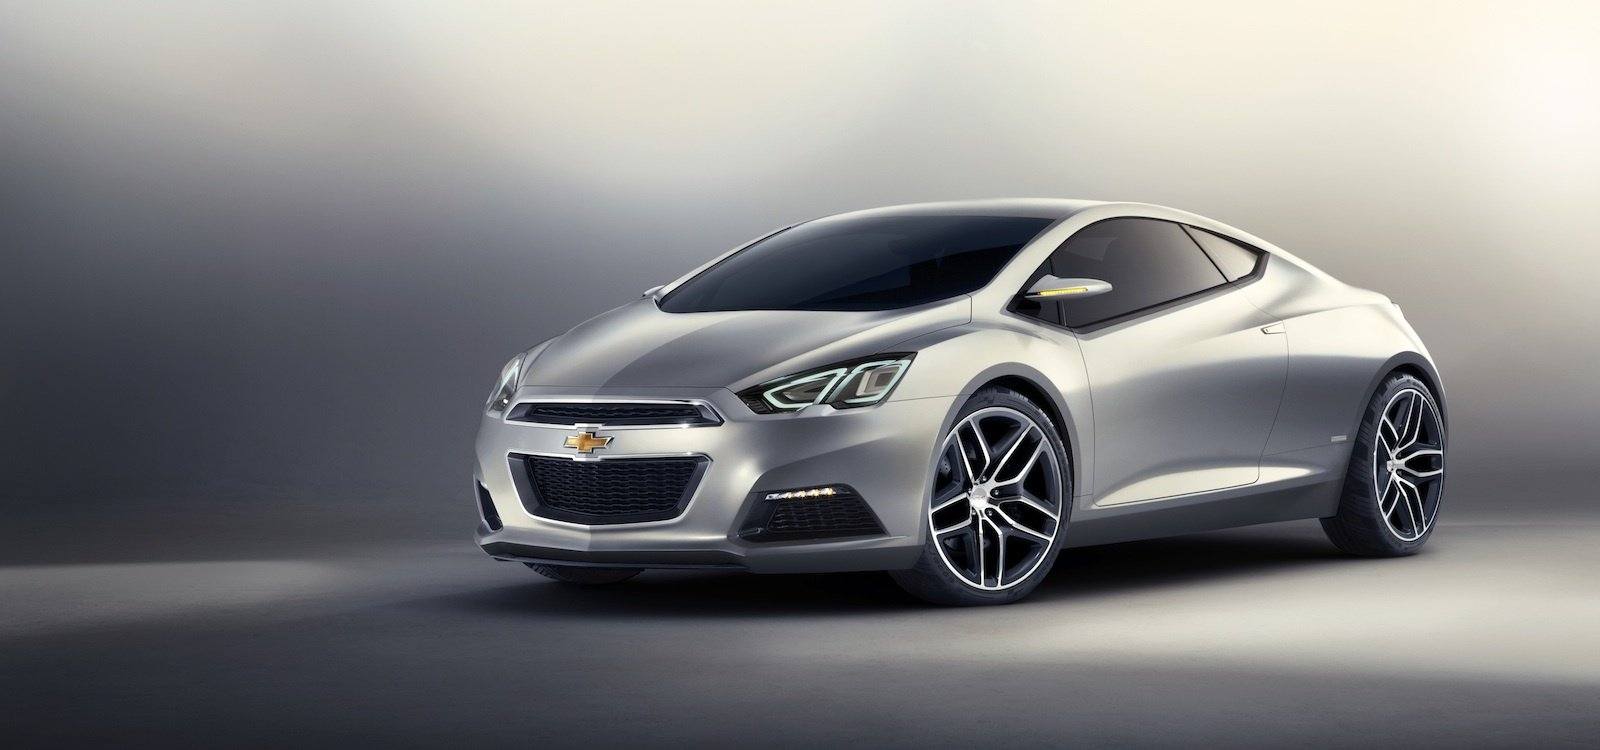 2012 Chevrolet Tru 140S Concept | Top Speed